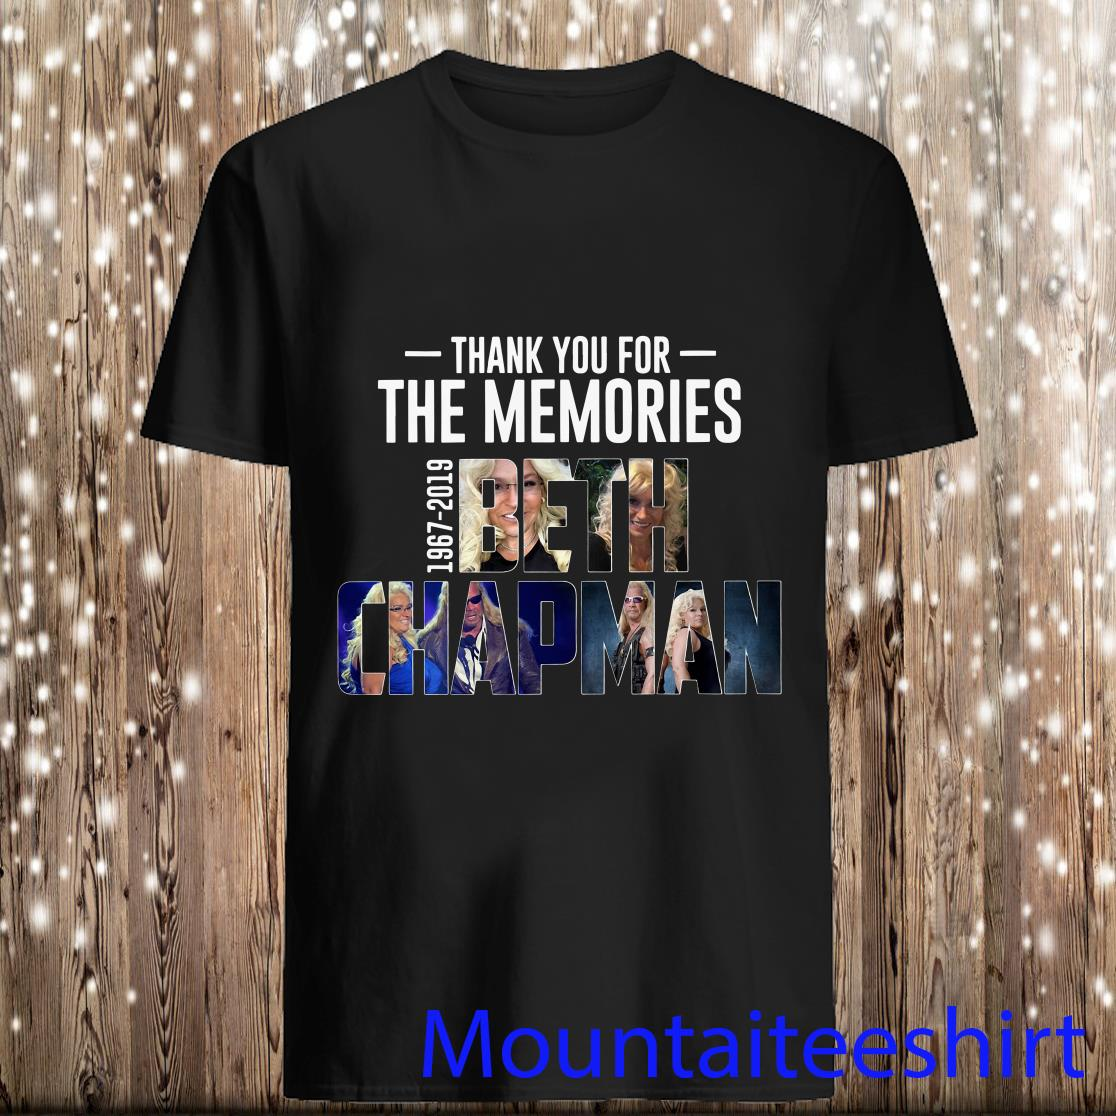 MimiStore Live Thank You for The Memories 1967-2019 Beth Chapman American Bounty Hunter Fans Shirt